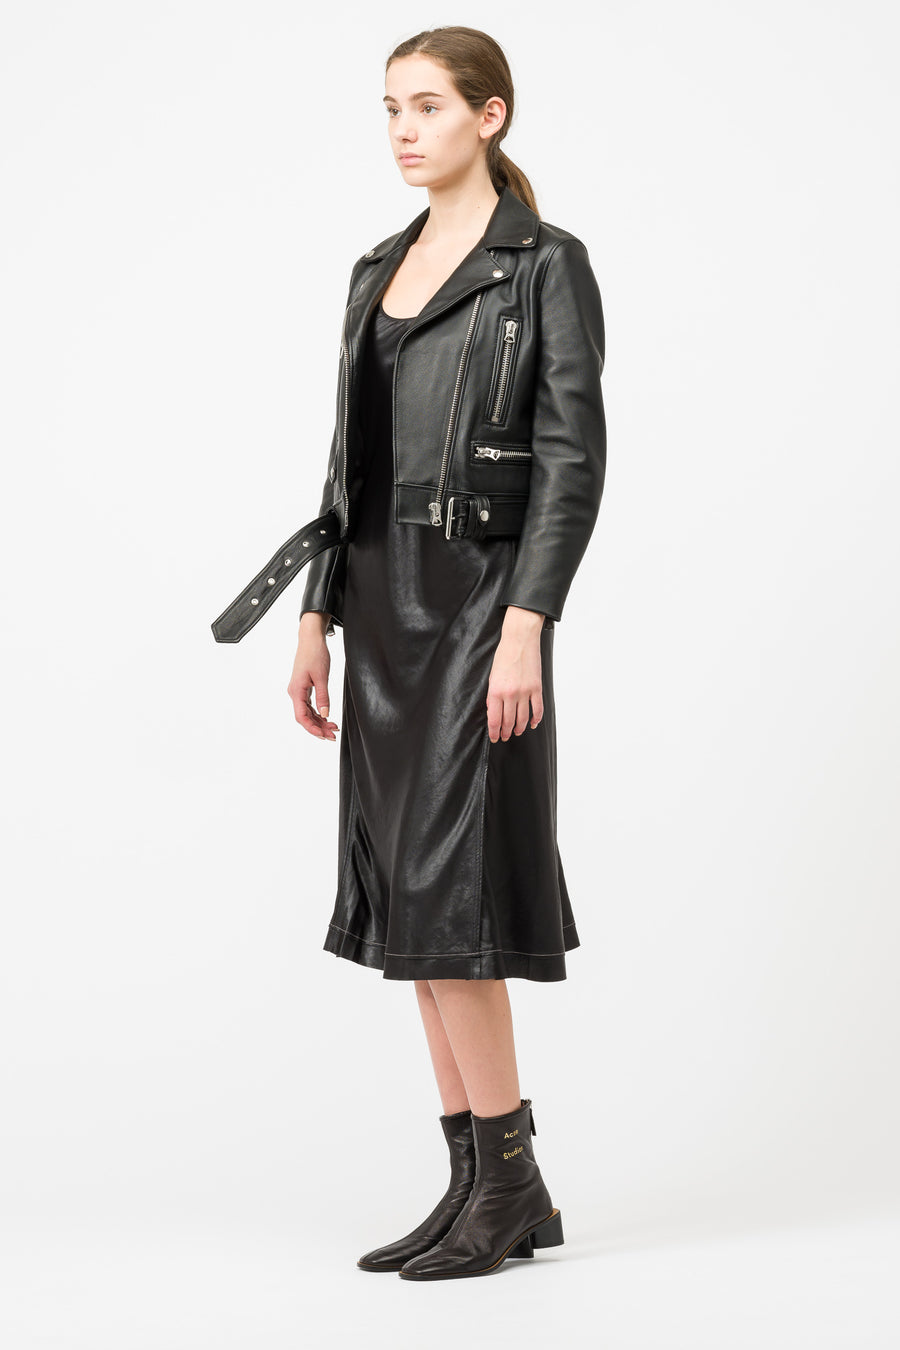 Acne Studios Mock Jacket in Black - Notre